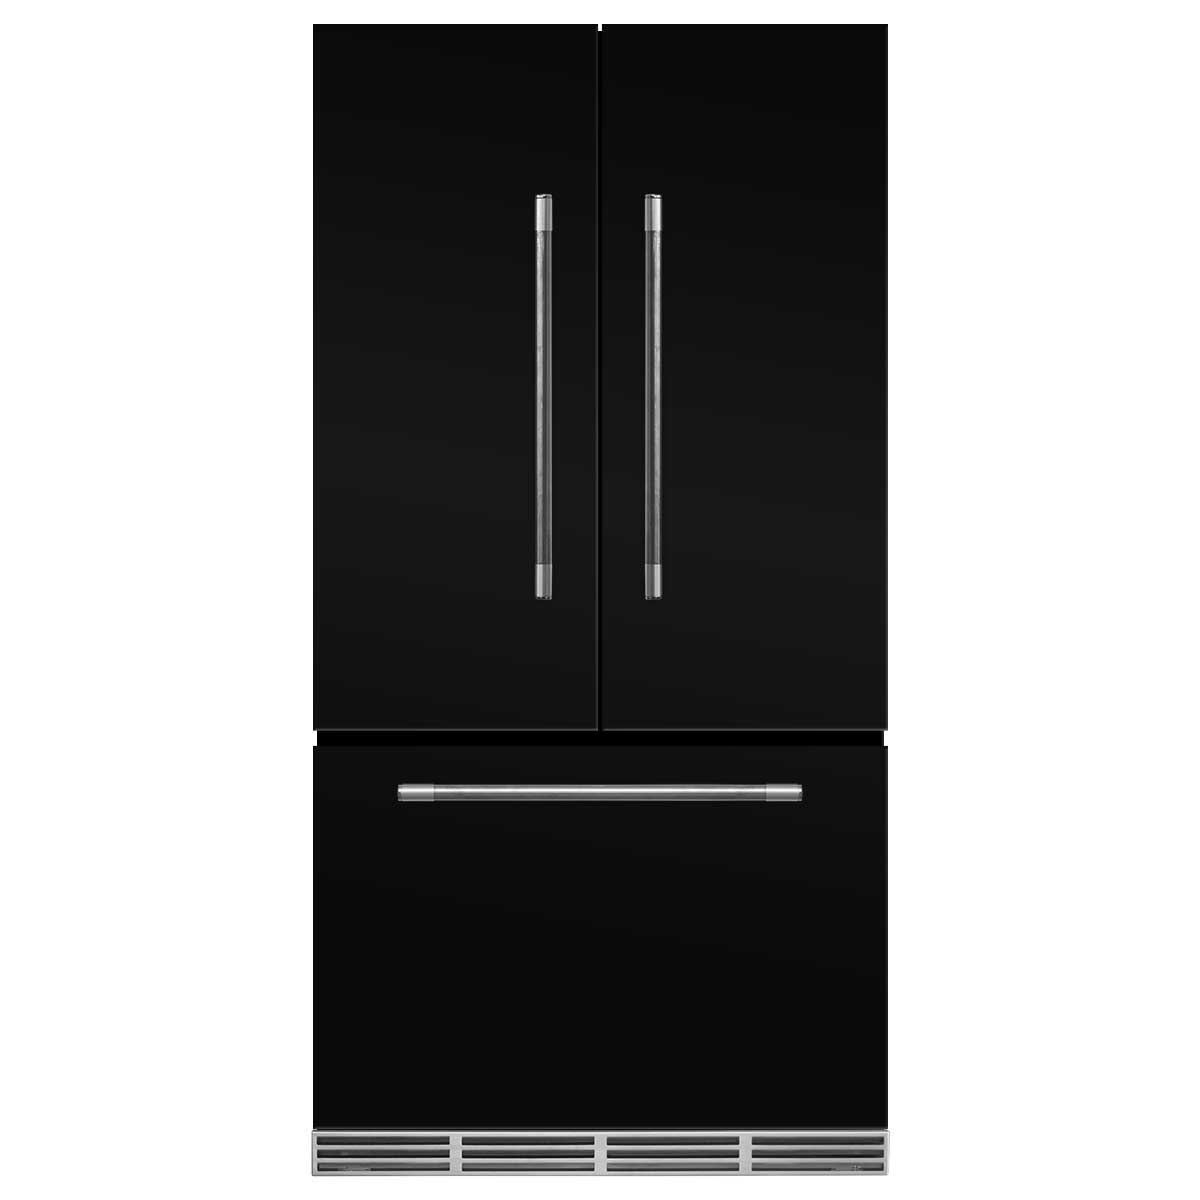 Marvel Mercury French Door Counter-Depth Refrigerator- Marvel Mercury French Door Refrigerator Gloos Black